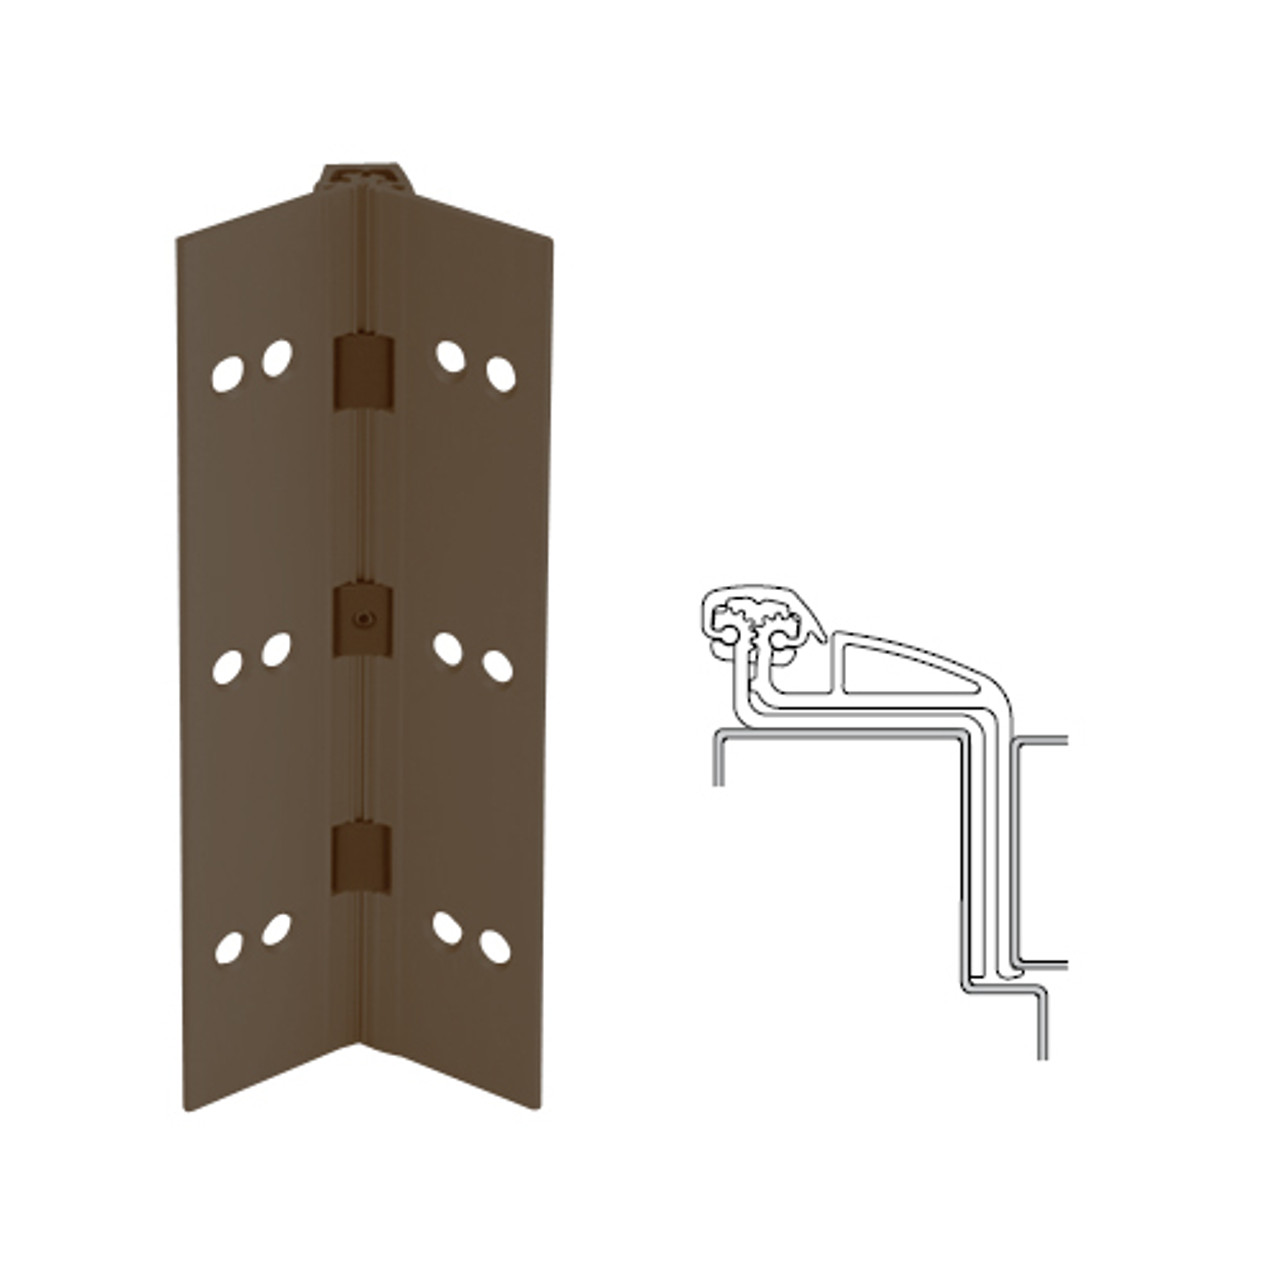 041XY-313AN-83-SECWDWD IVES Full Mortise Continuous Geared Hinges with Security Screws - Hex Pin Drive in Dark Bronze Anodized